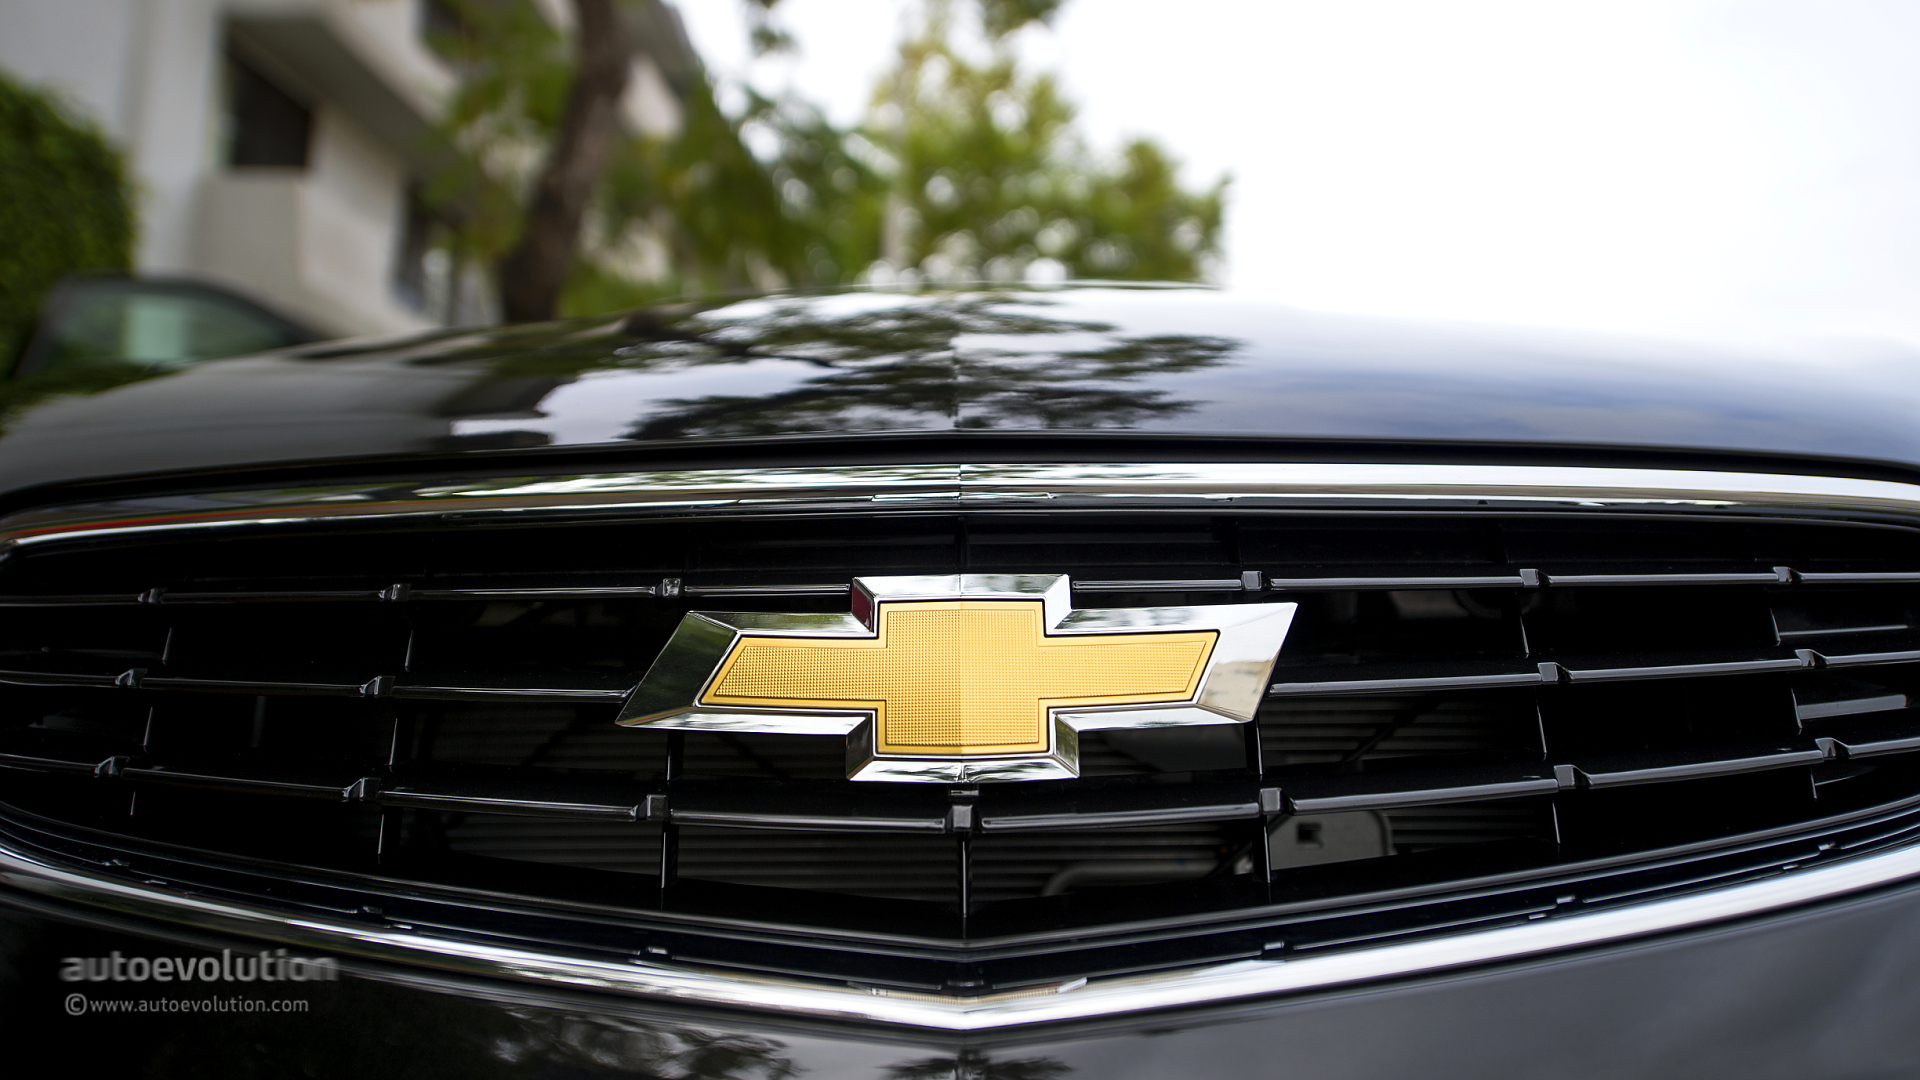 Chevrolet Ss Hd Wallpapers Autoevolution